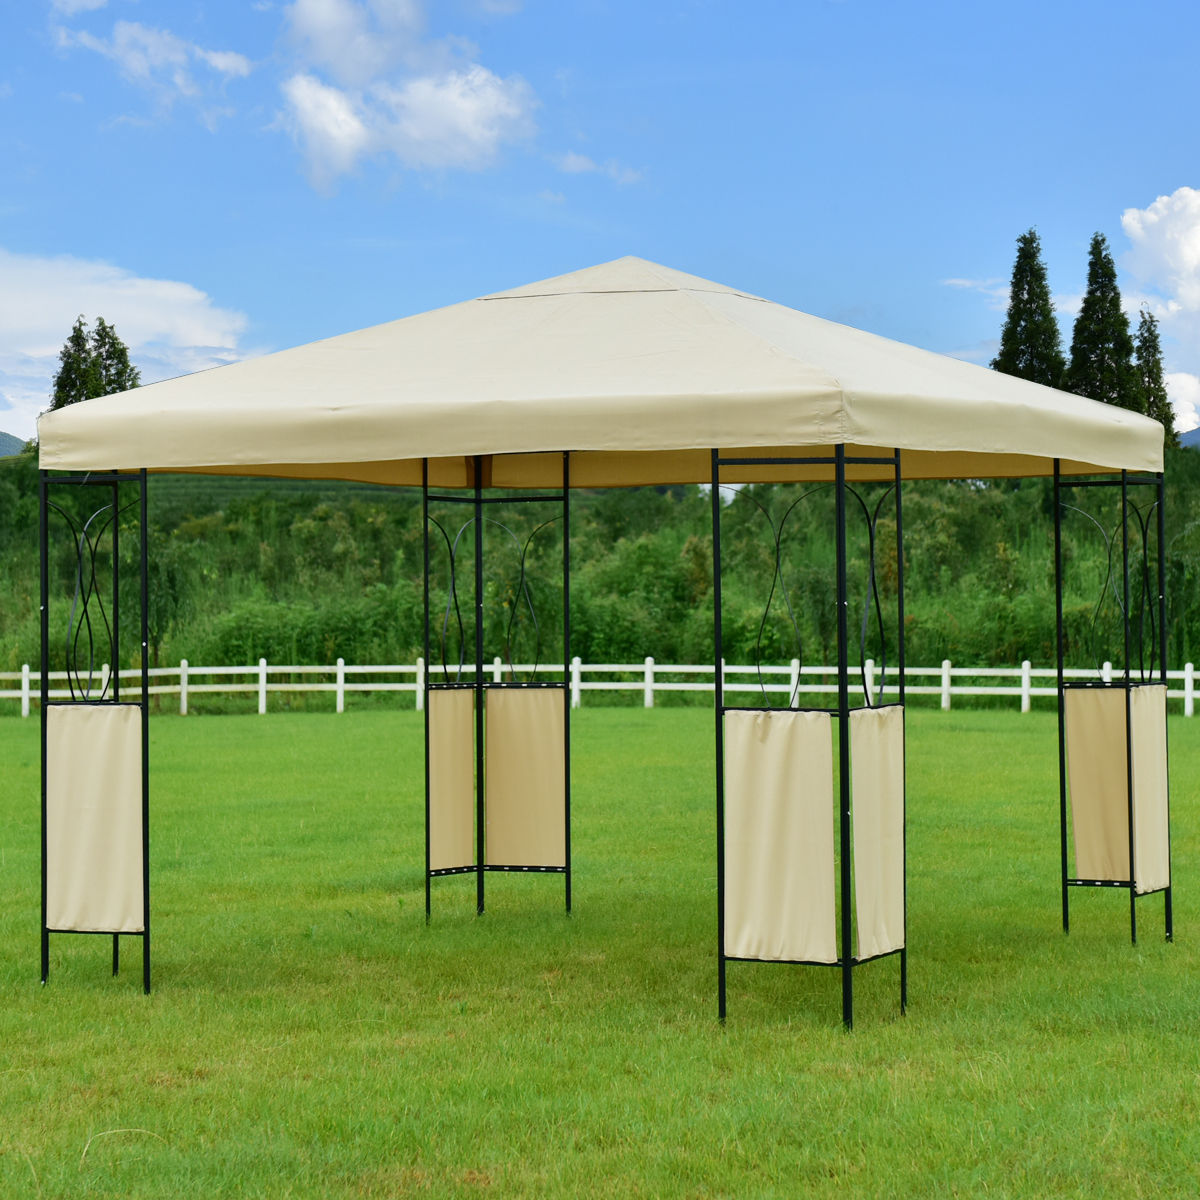 Goplus 10'X10' Gazebo Canopy Shelter Patio Wedding Party Tent Outdoor Awning Portable Garden Canopy Tent OP3180 yp80100 80x100cm 80x200cm 80x300cm clear window awning diy overhead door canopy decorator patio cover